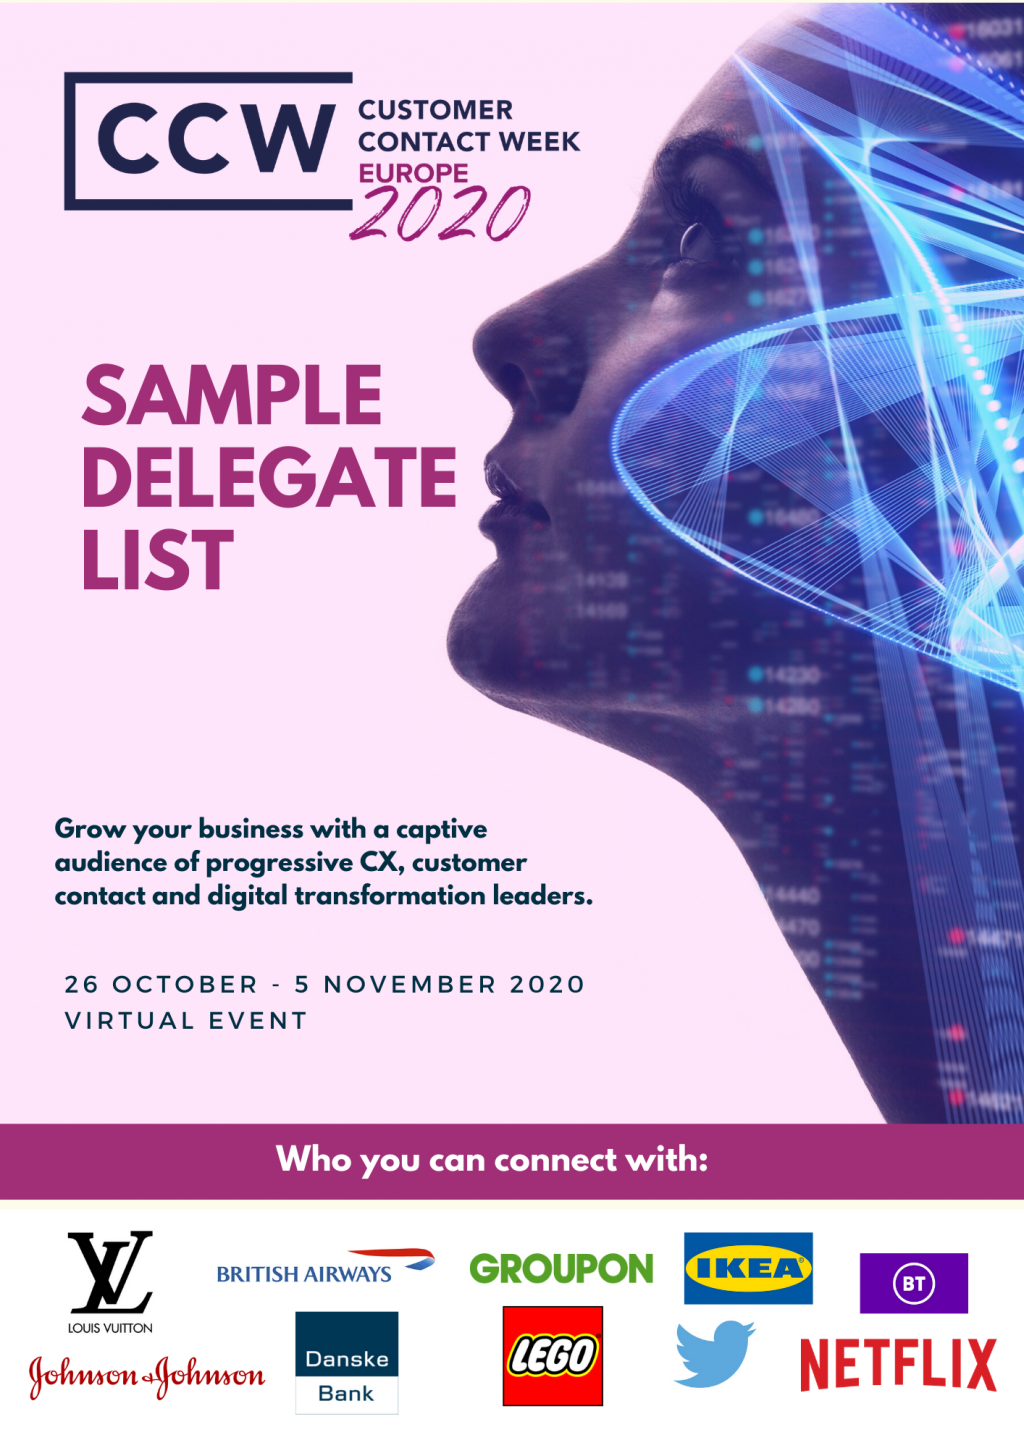 Sample Delegate List - Who you can connect with